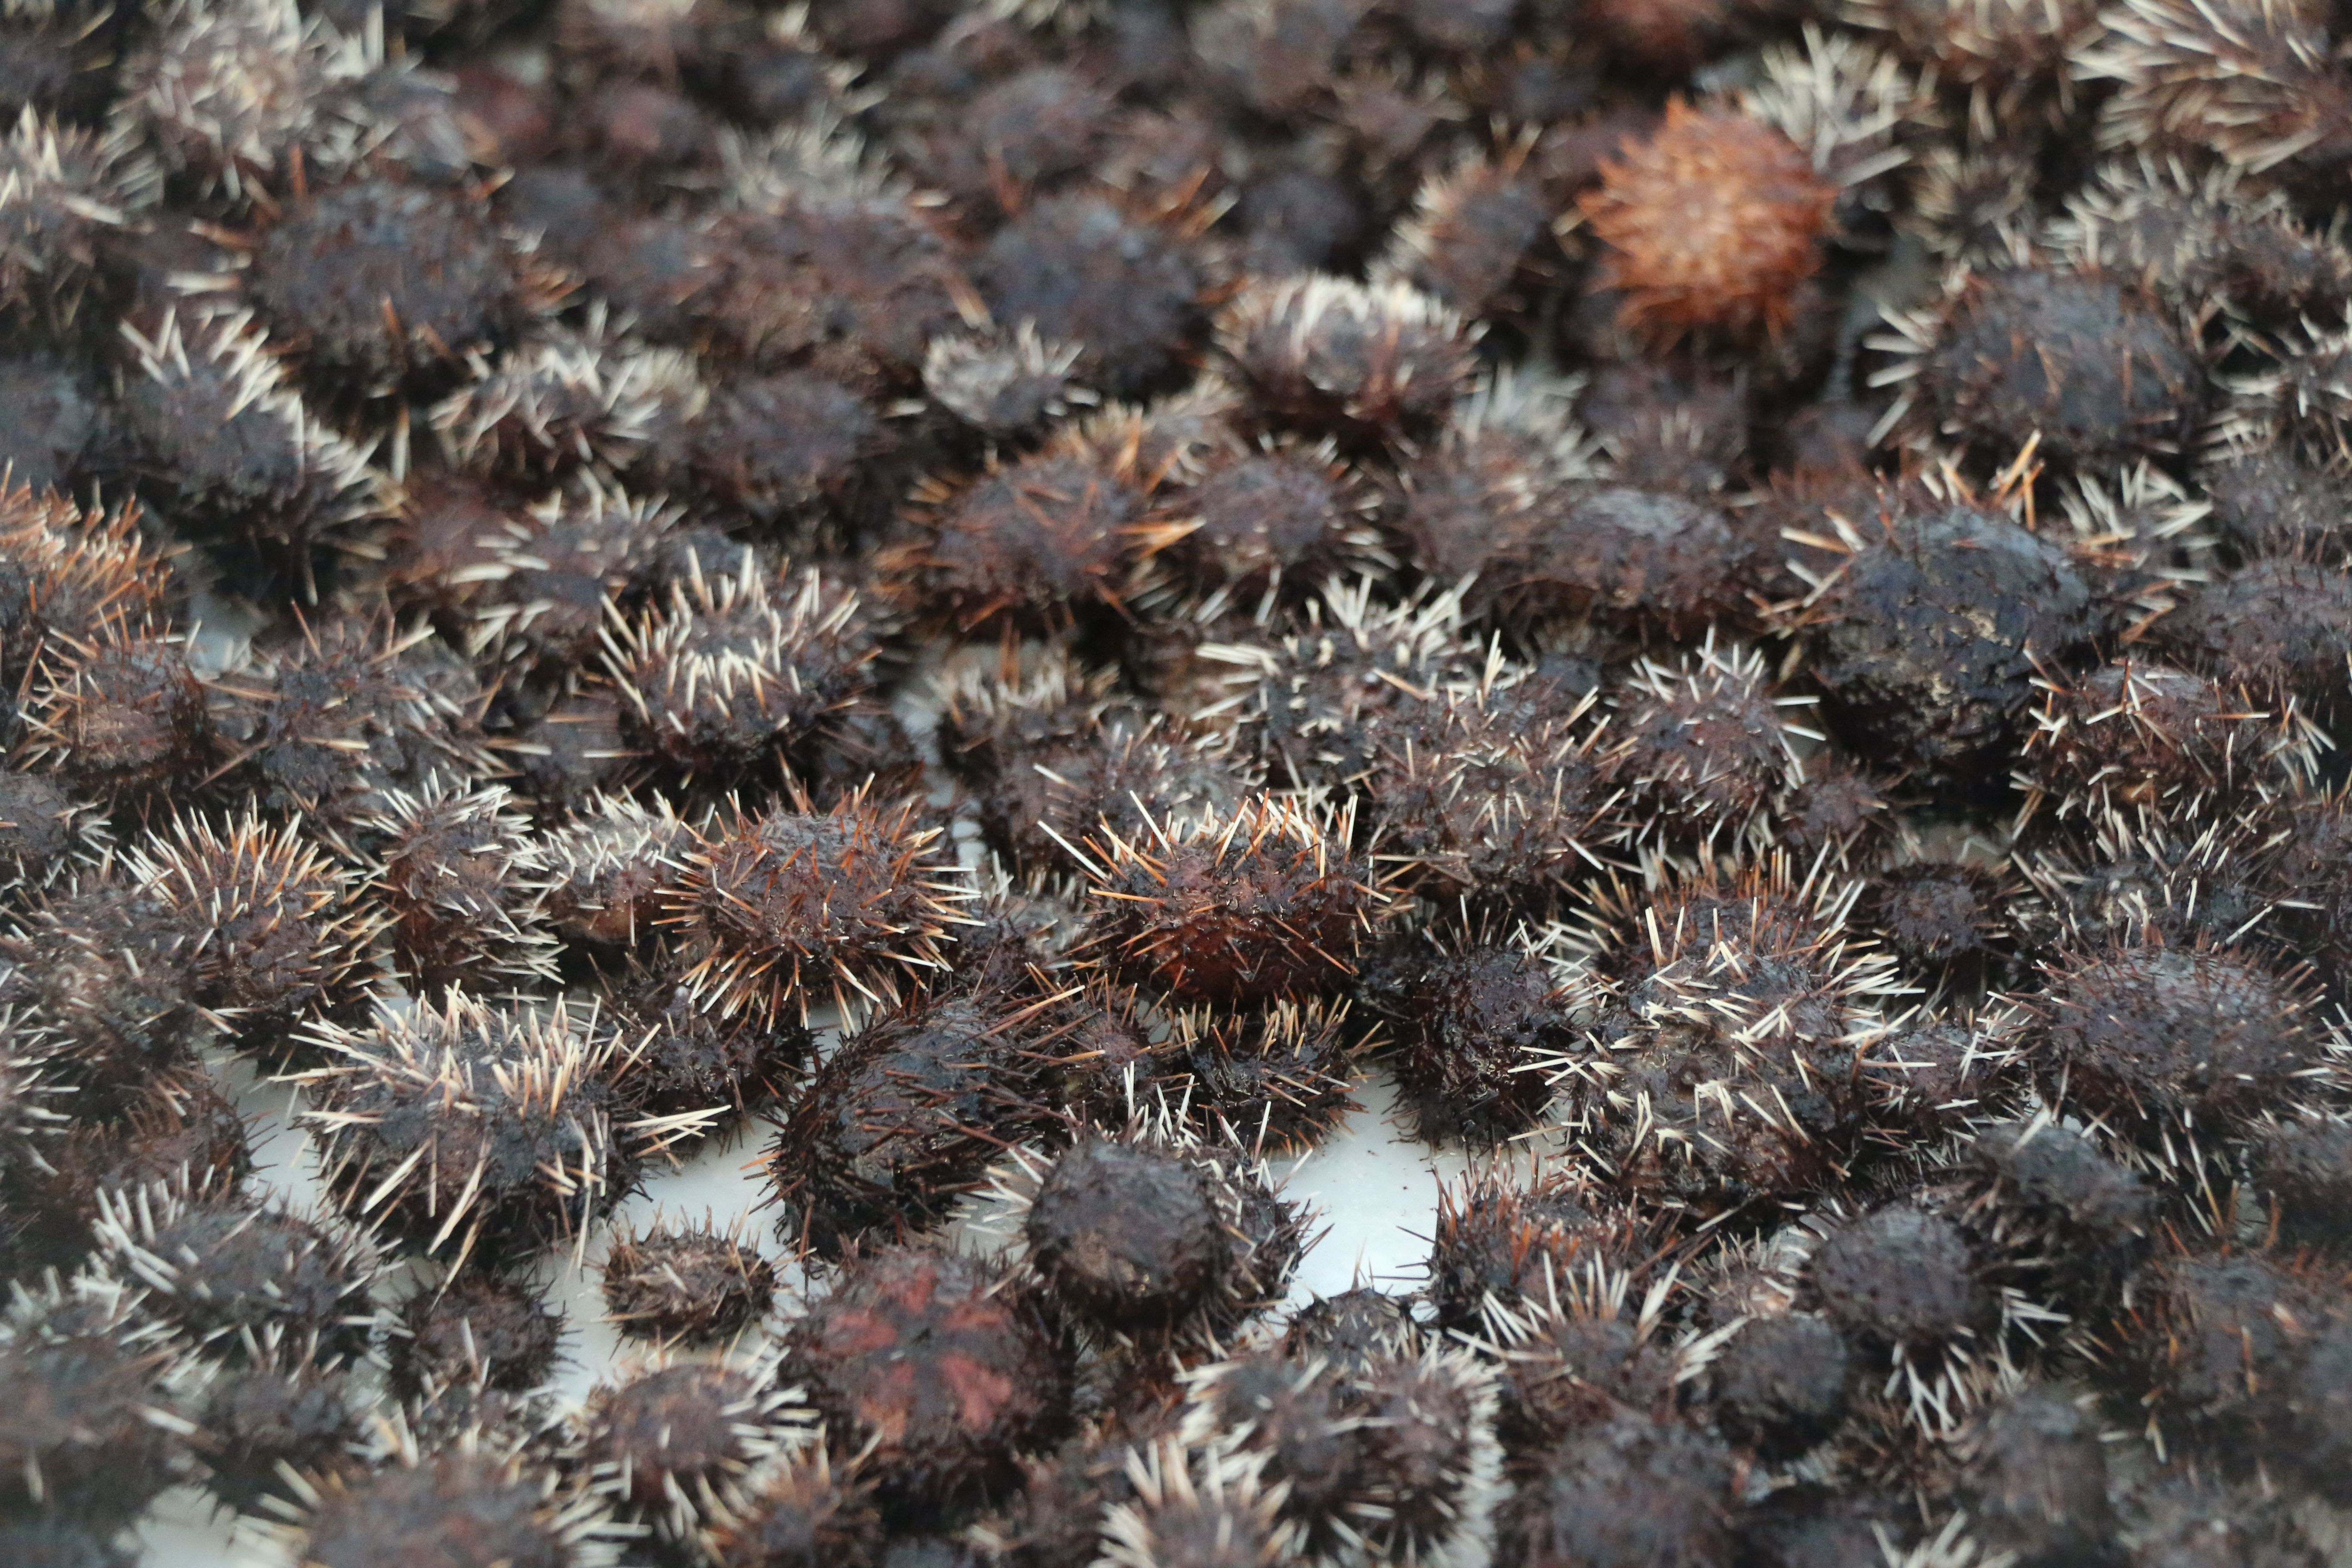 DLNR Uses Sea Urchins to Curb Invasive Seaweed